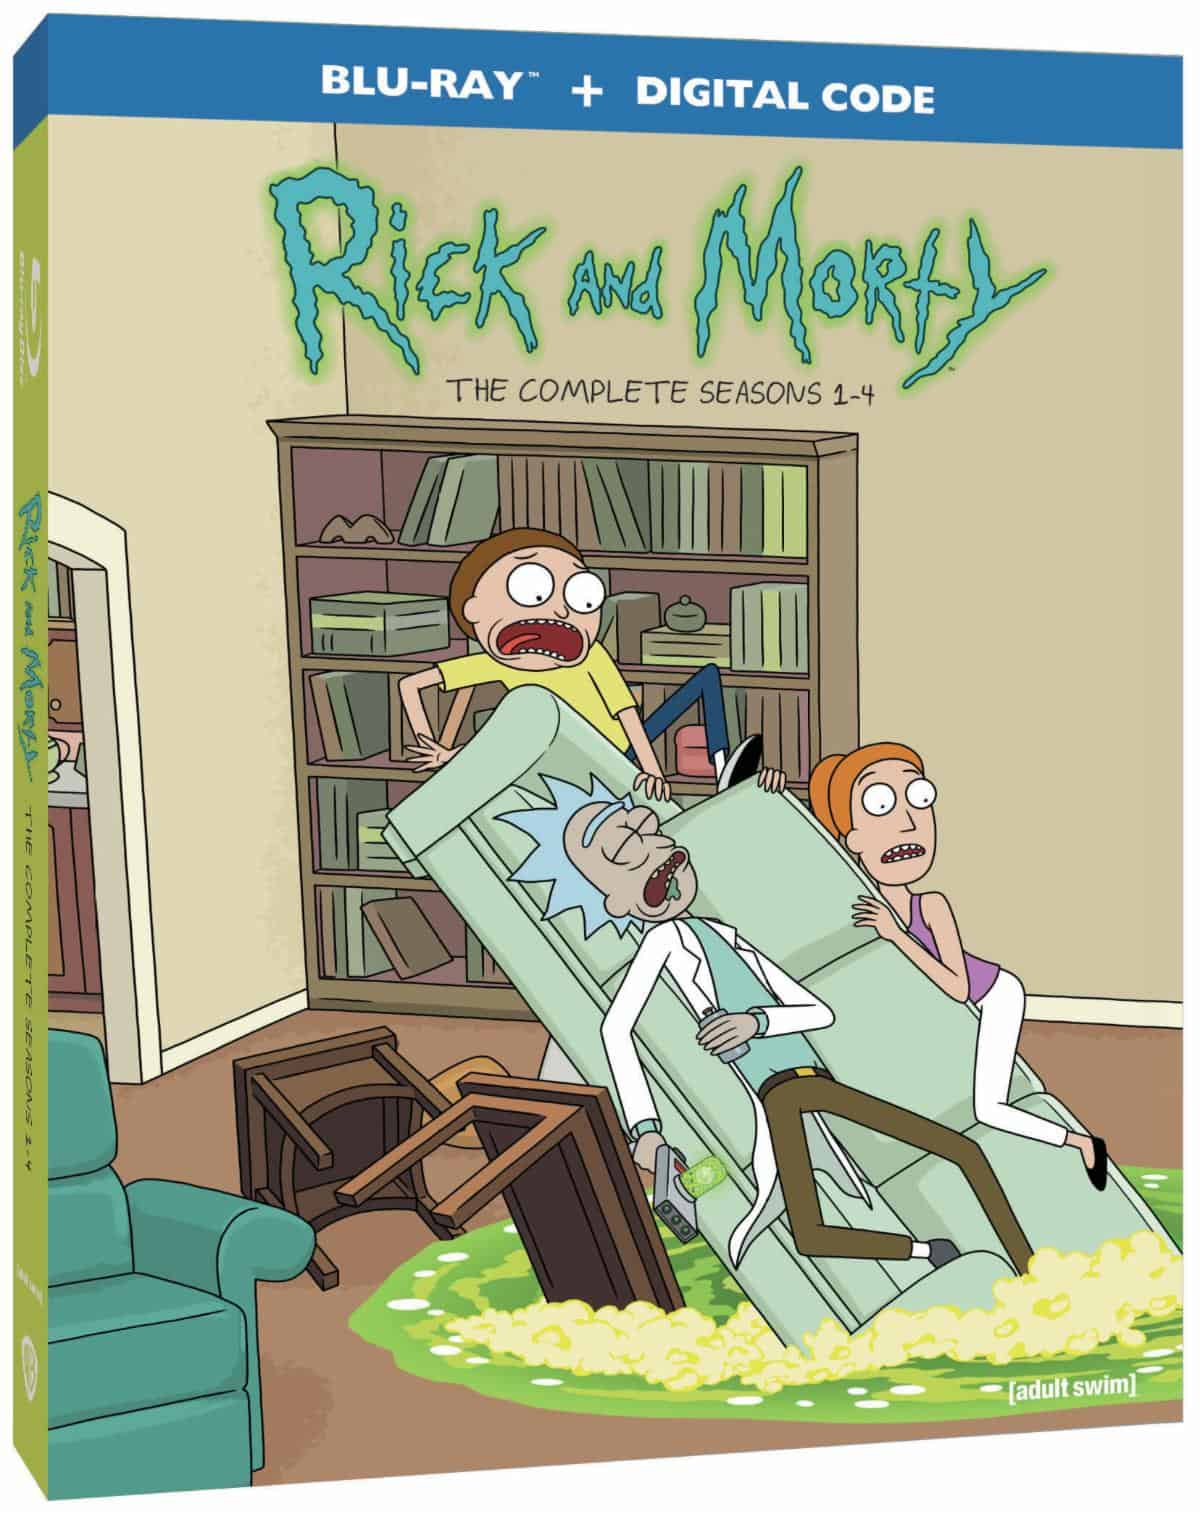 Rick and Morty Seasons 1 through 4 Blu-ray box